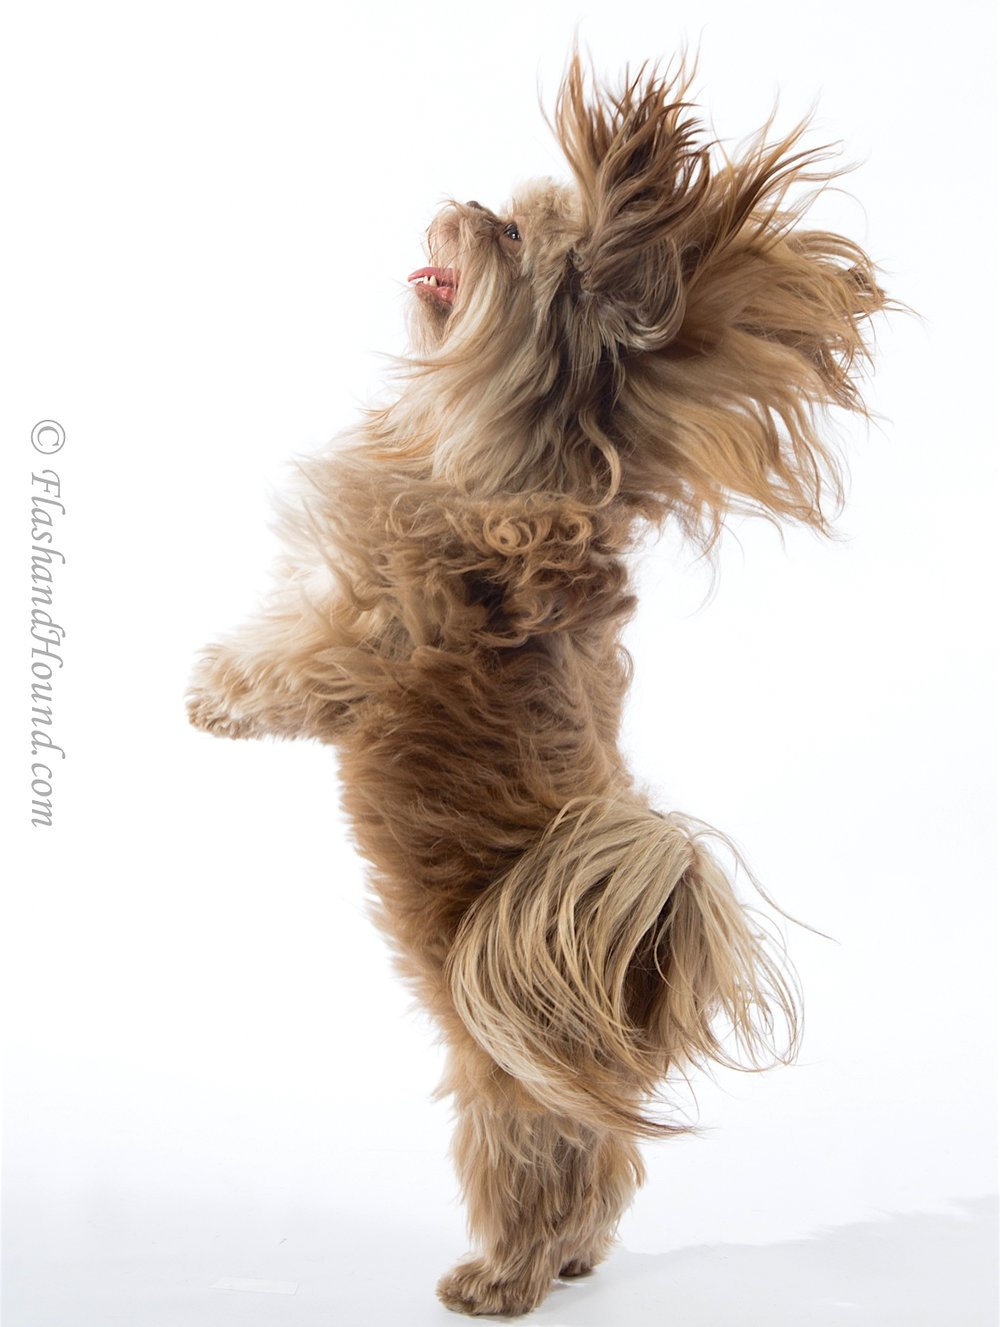 Shih Tzu posing on hind legs for a studio photoshoot